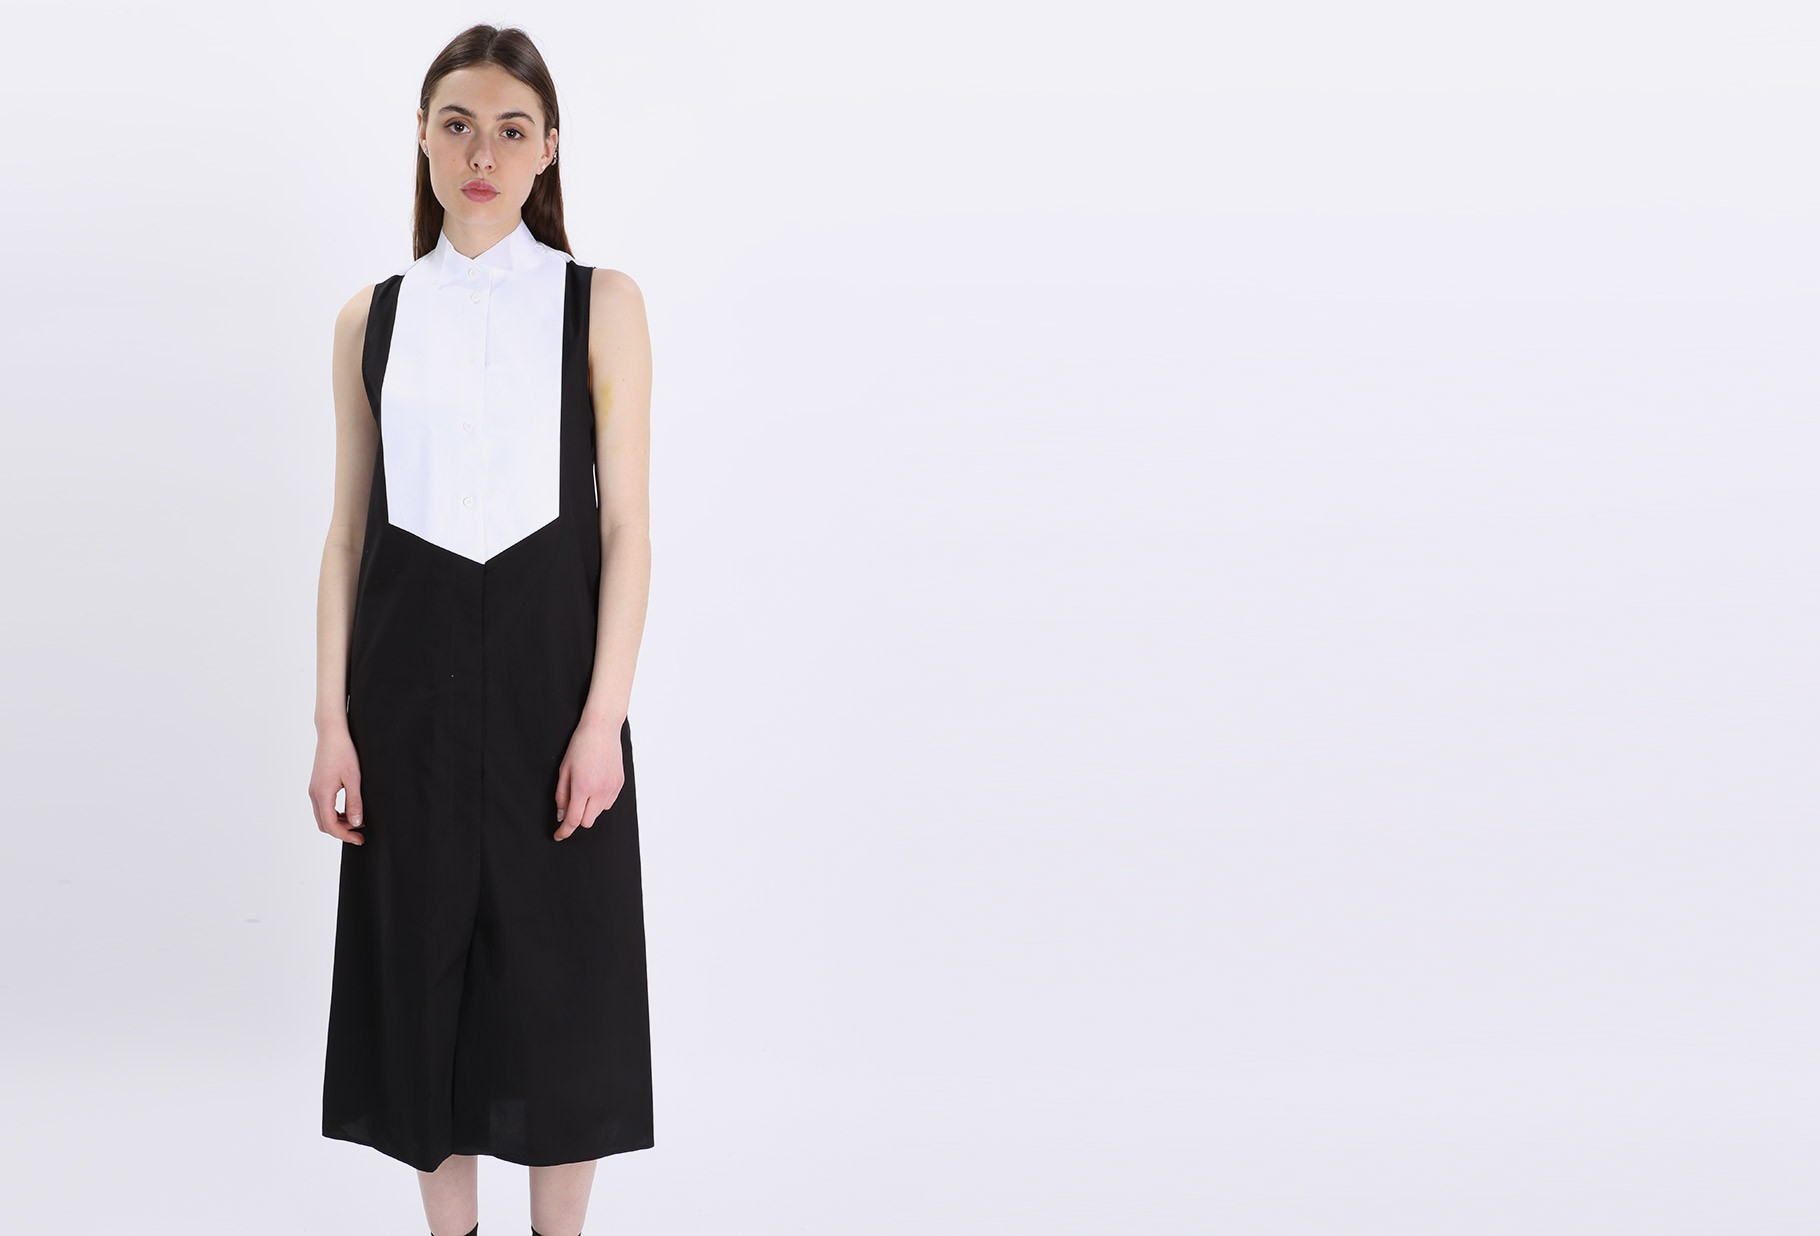 Dress without sleeves Black/white